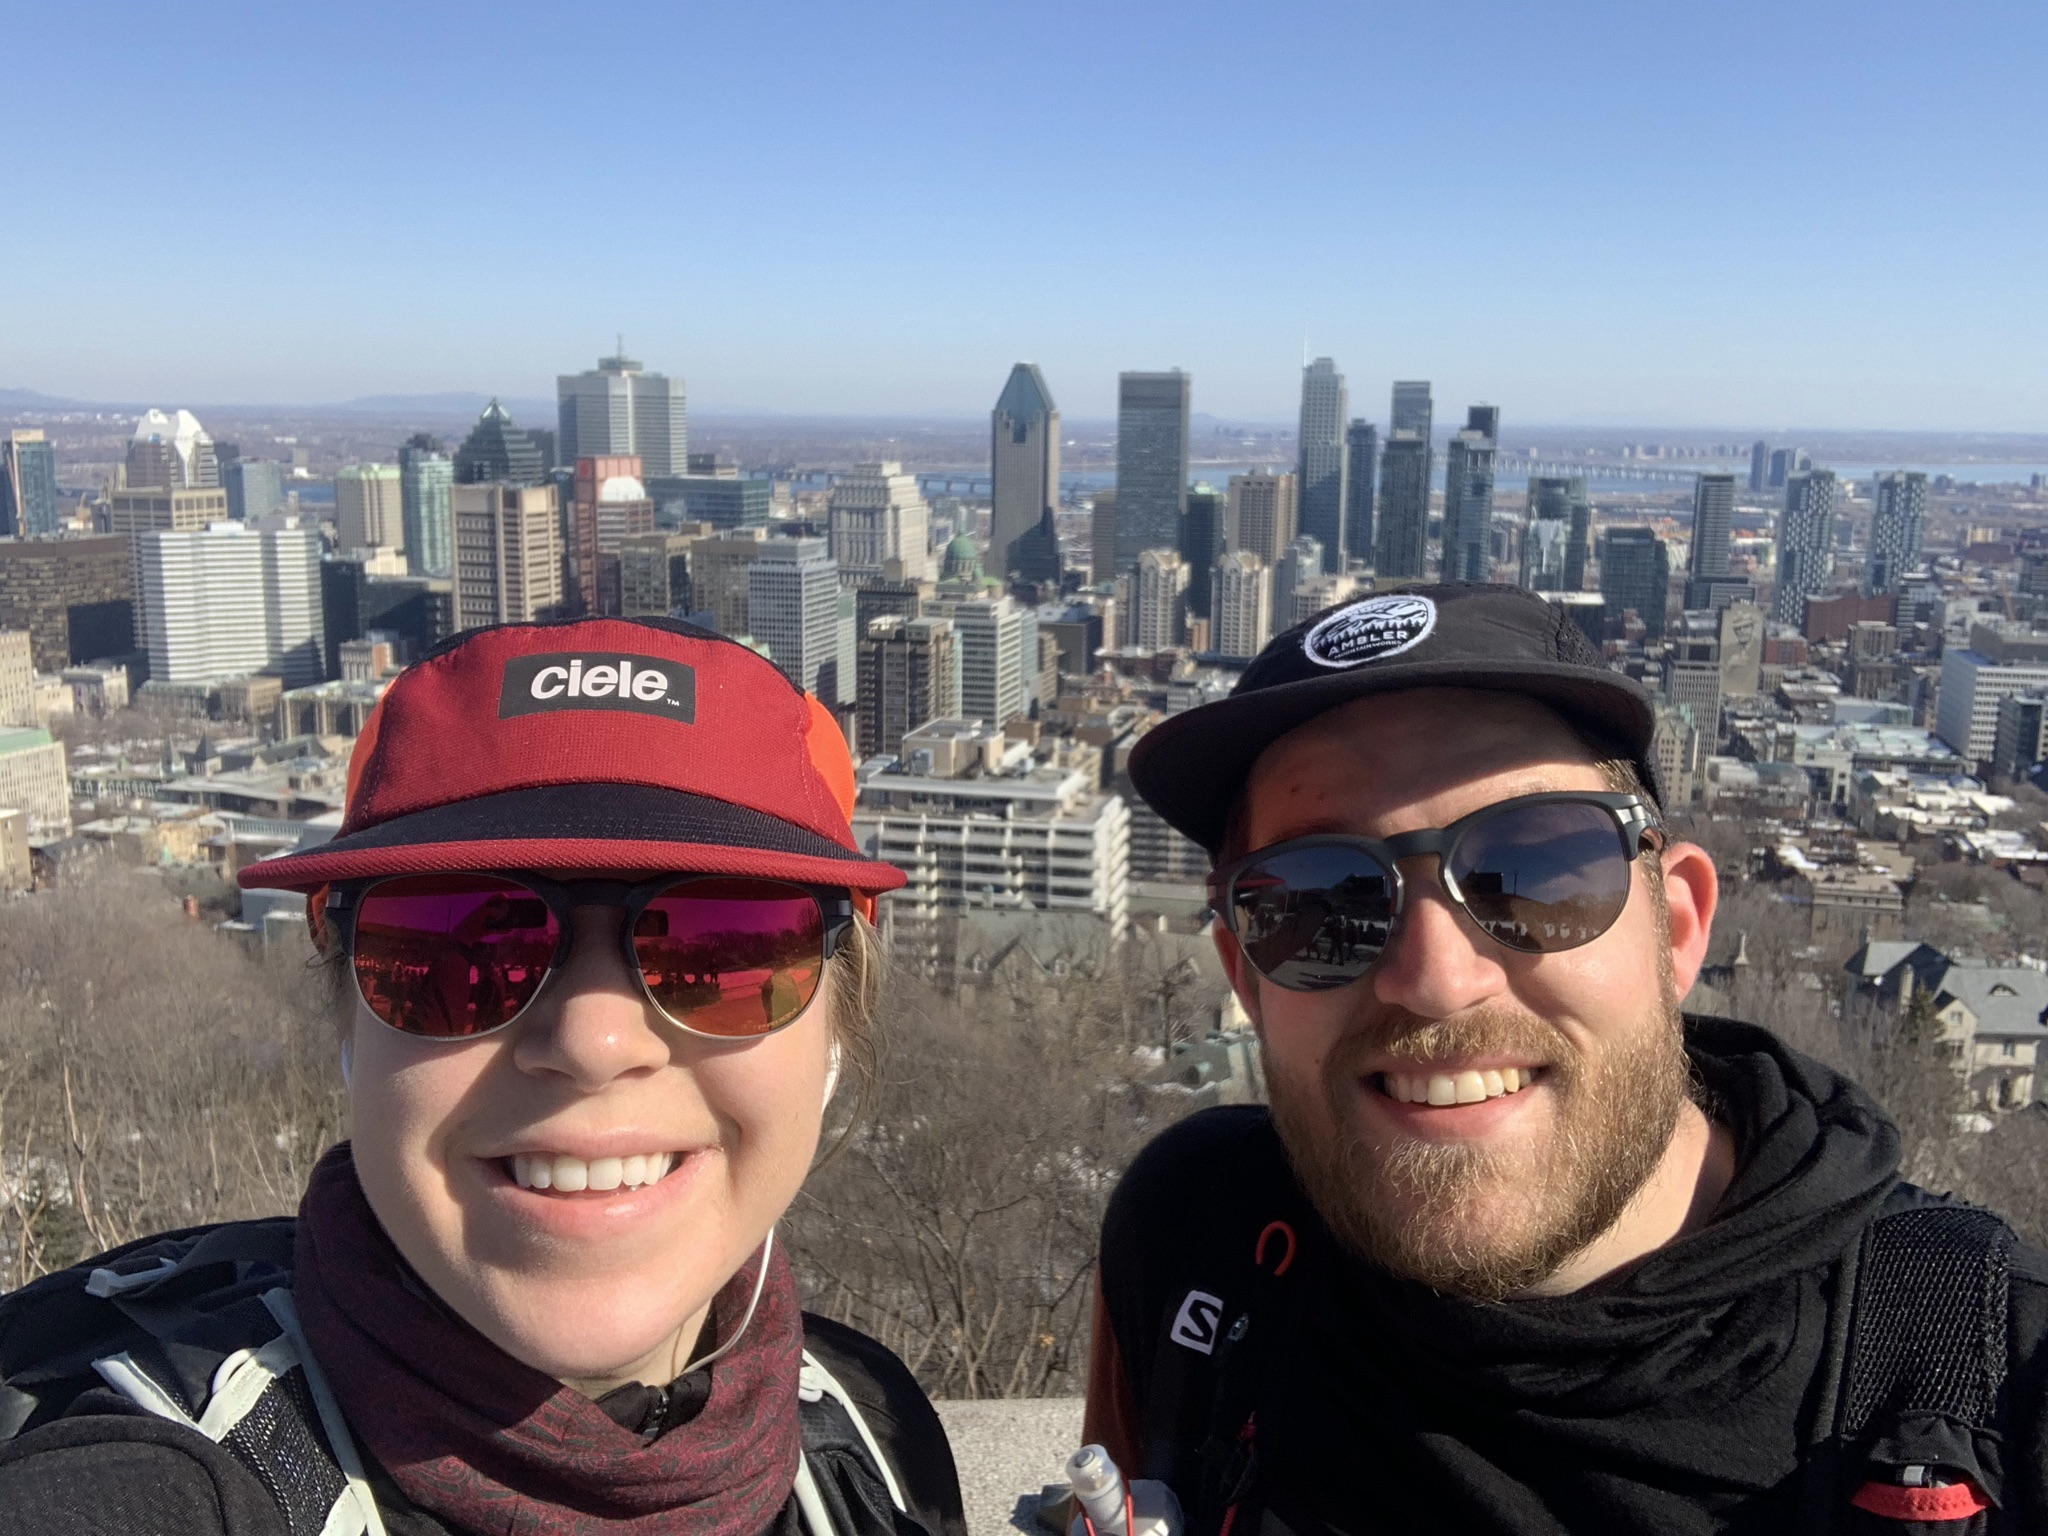 RUNNING TO VISIT A CITY: A JOURNEY ACROSS MONTREAL